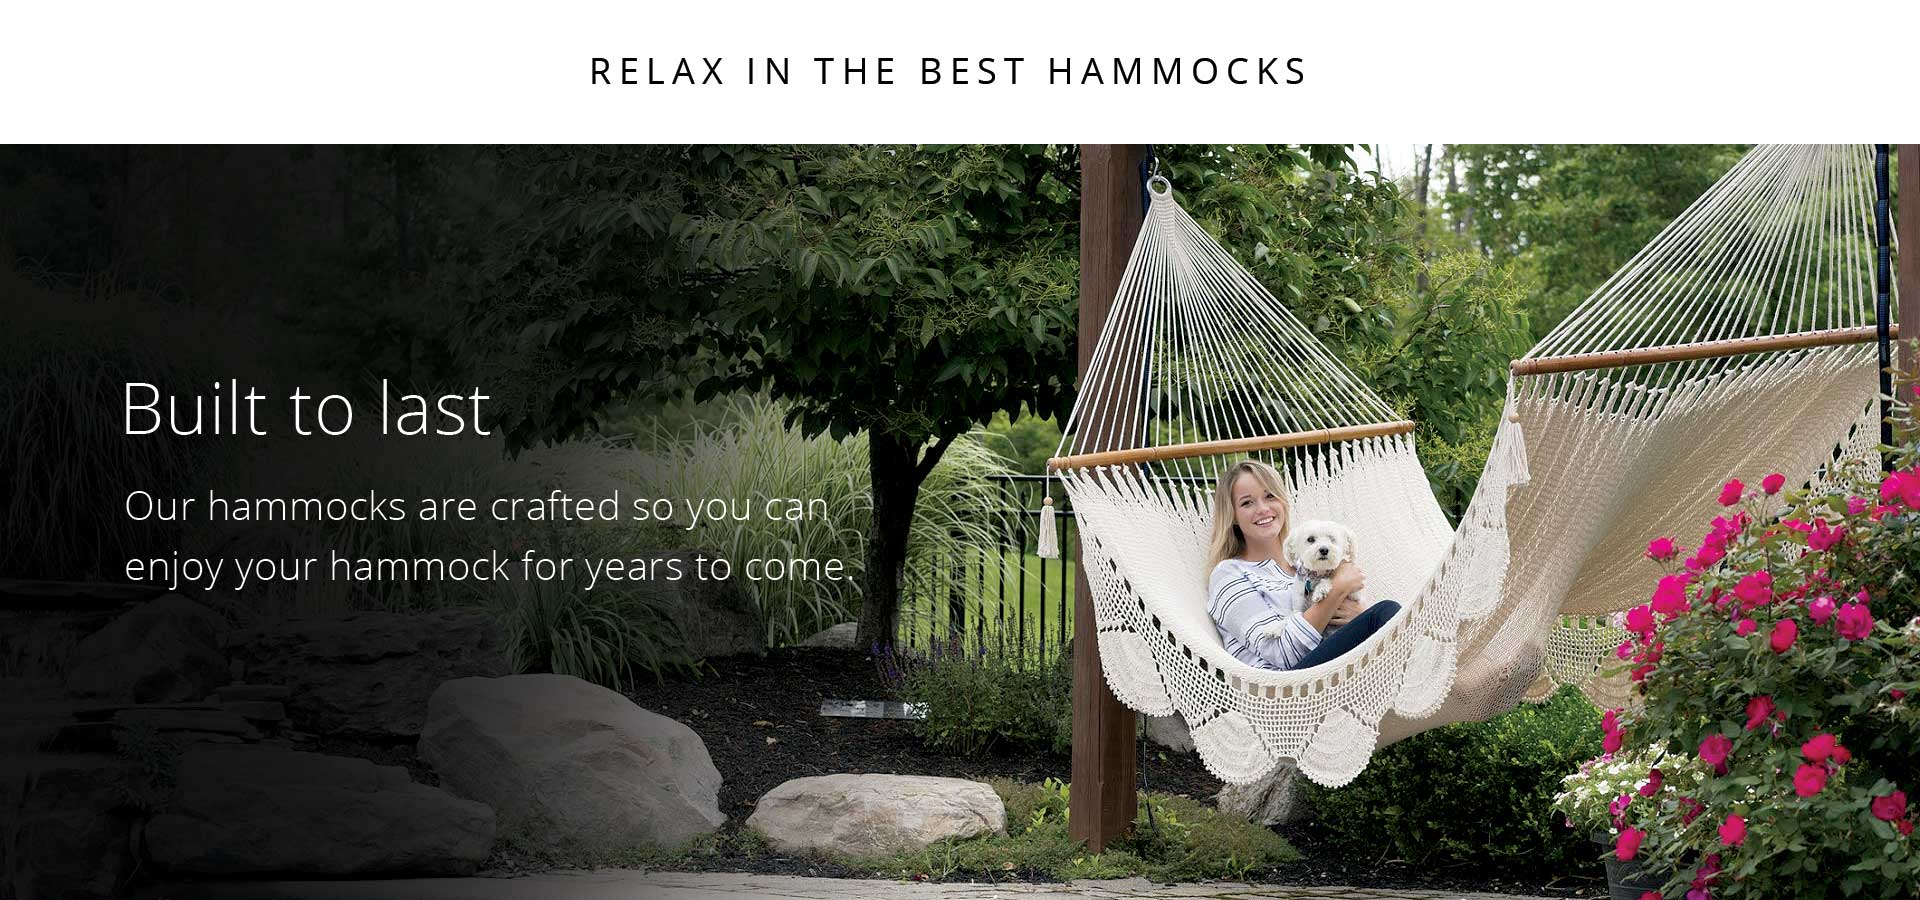 Wholestory Mission Buy Hammocks